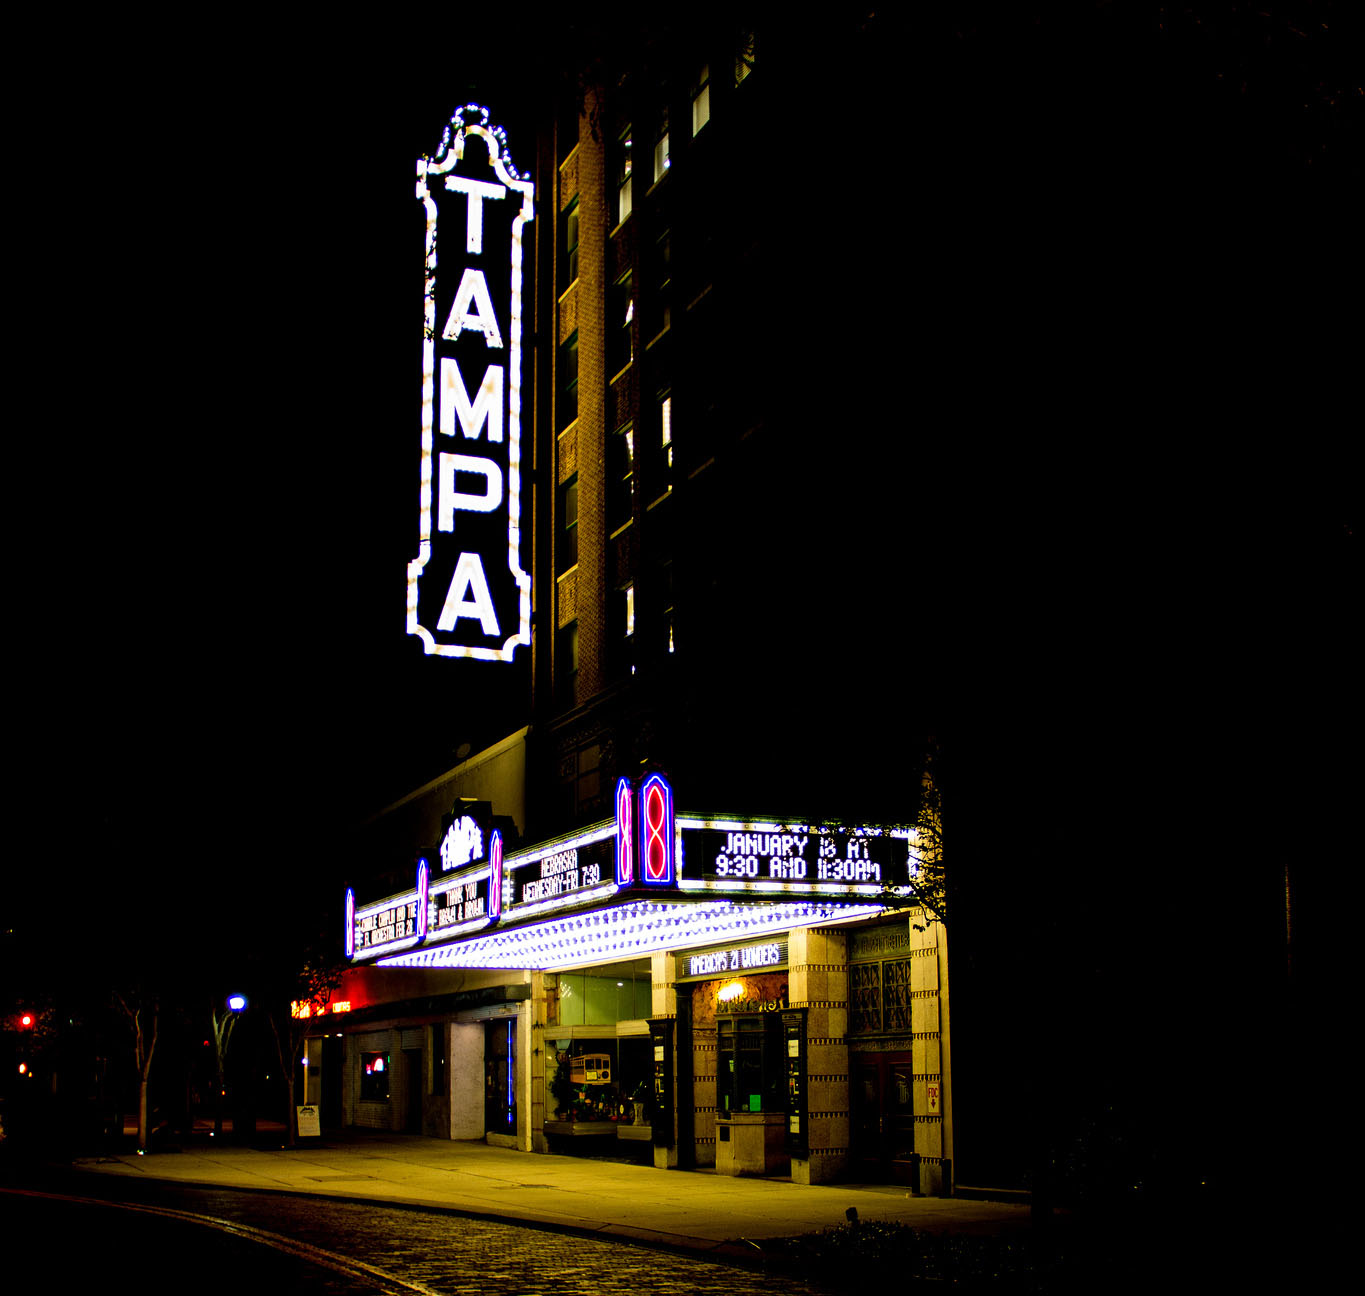 A photograph of the Tampa theater in beautiful downtown Tampa, Fl by Sam Hamberg.